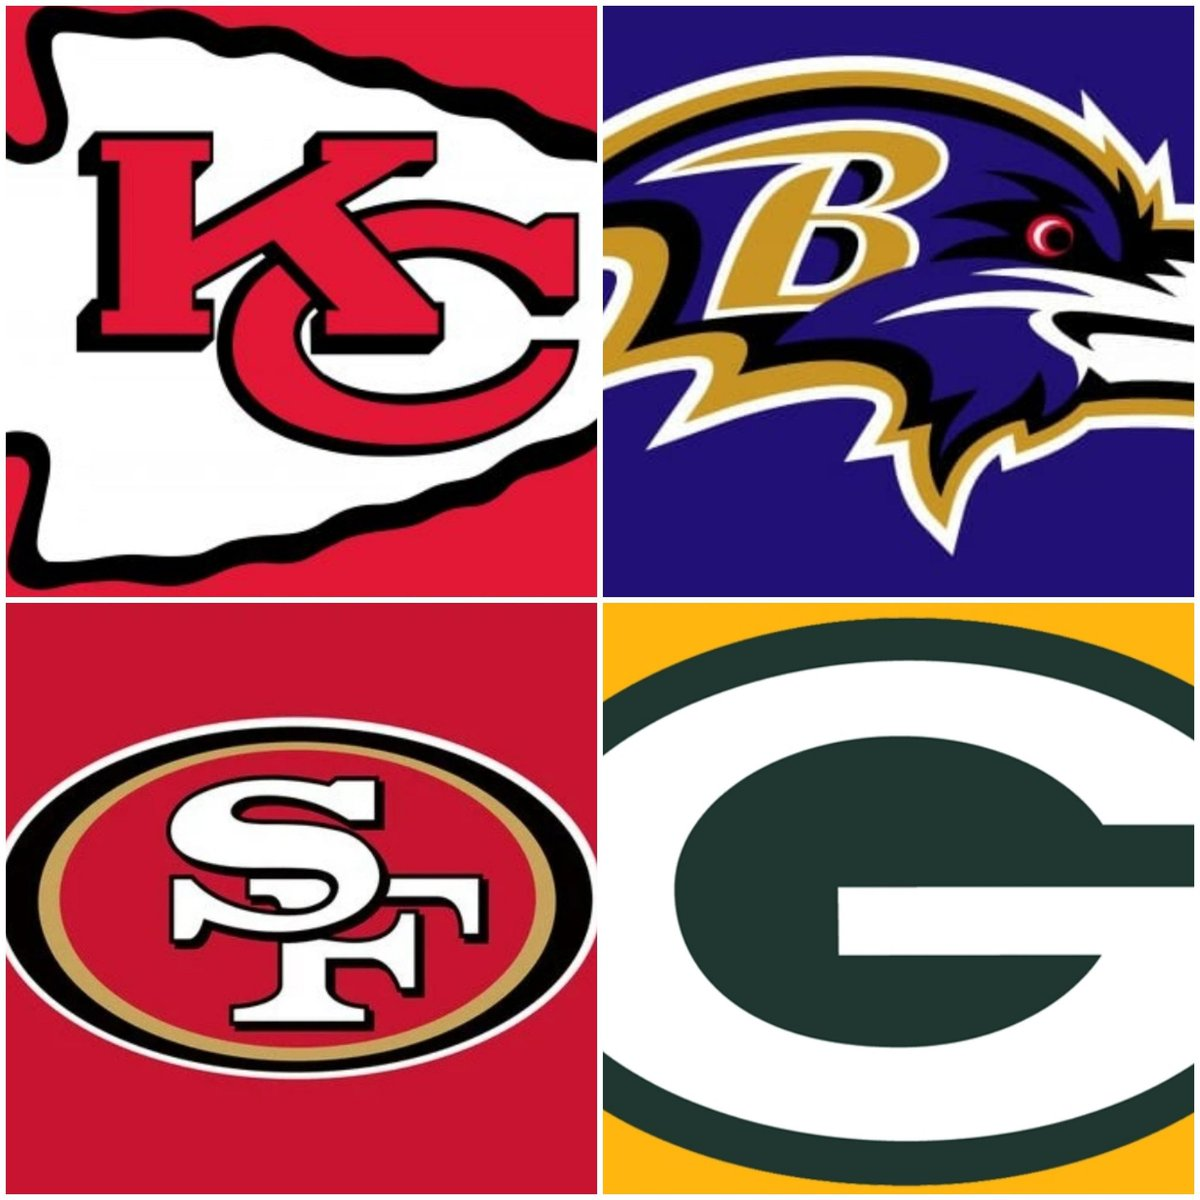 Happy Monday! Here's @brando_puma way too early 2020 #NFL Power Rankings!1. #Chiefs2. #Ravens3. #49ers4. #PackersThoughts? Comment below!#chiefskingdom #KansasCity #Baltimore #RavensFlock #sanfrancisco #goniners #GreenBay #GoPackGo #powerrankings #NFLNews #Podcast